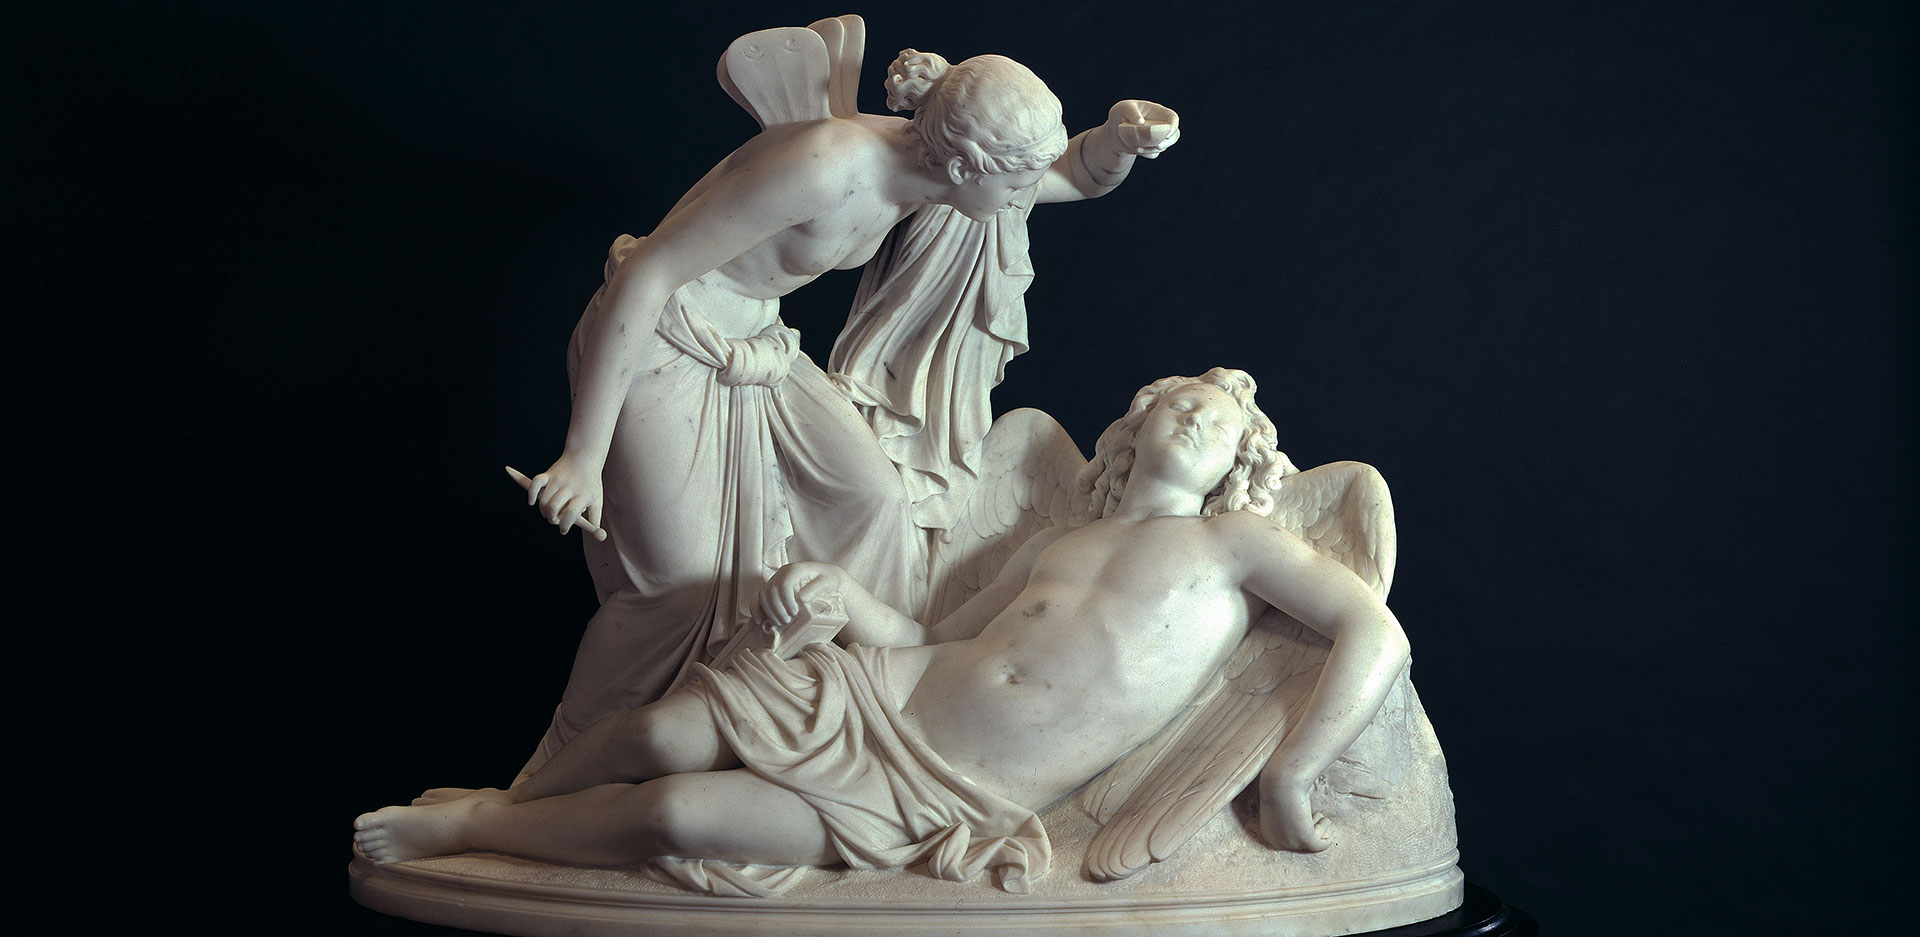 Reinhold Begas (1831-1911), Cupid and Psyche, sculpture / marble (1854-57)